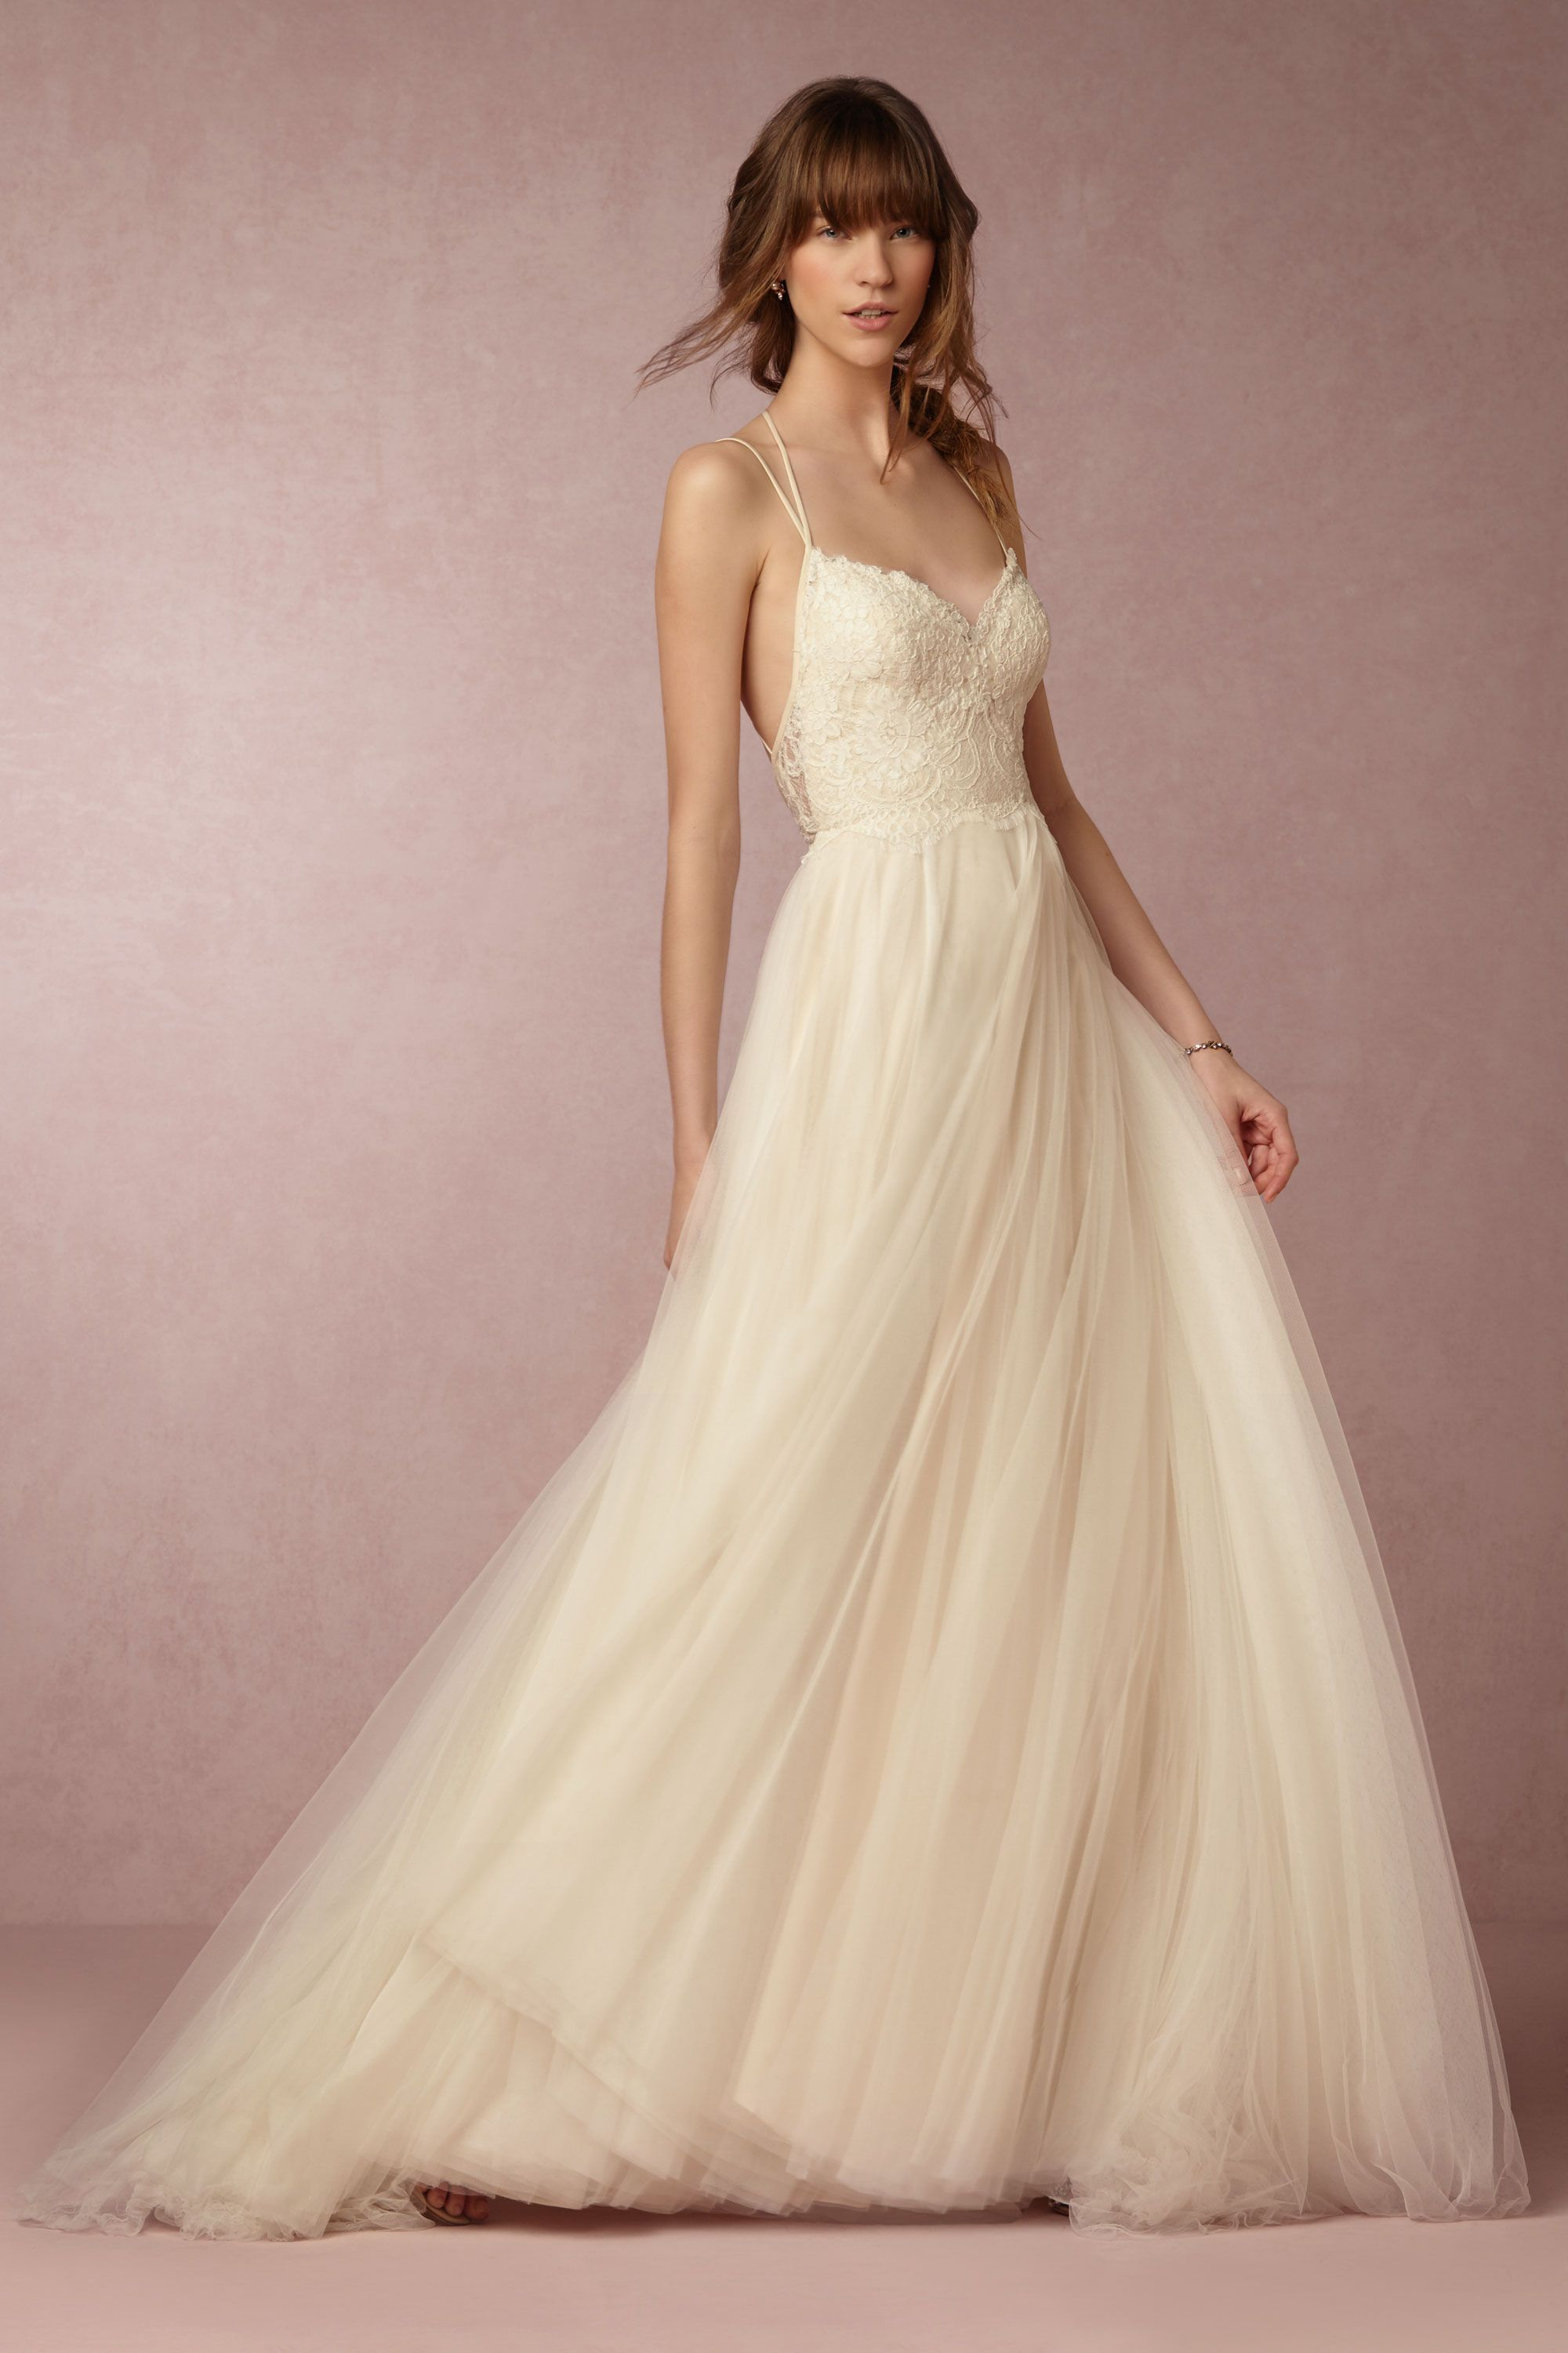 Ivory Lace Tulle Wedding Dress With Dainty Strap Detail The Dreamy Bodice Scalloped Edging At Waist And A Full Skirt Over Soft